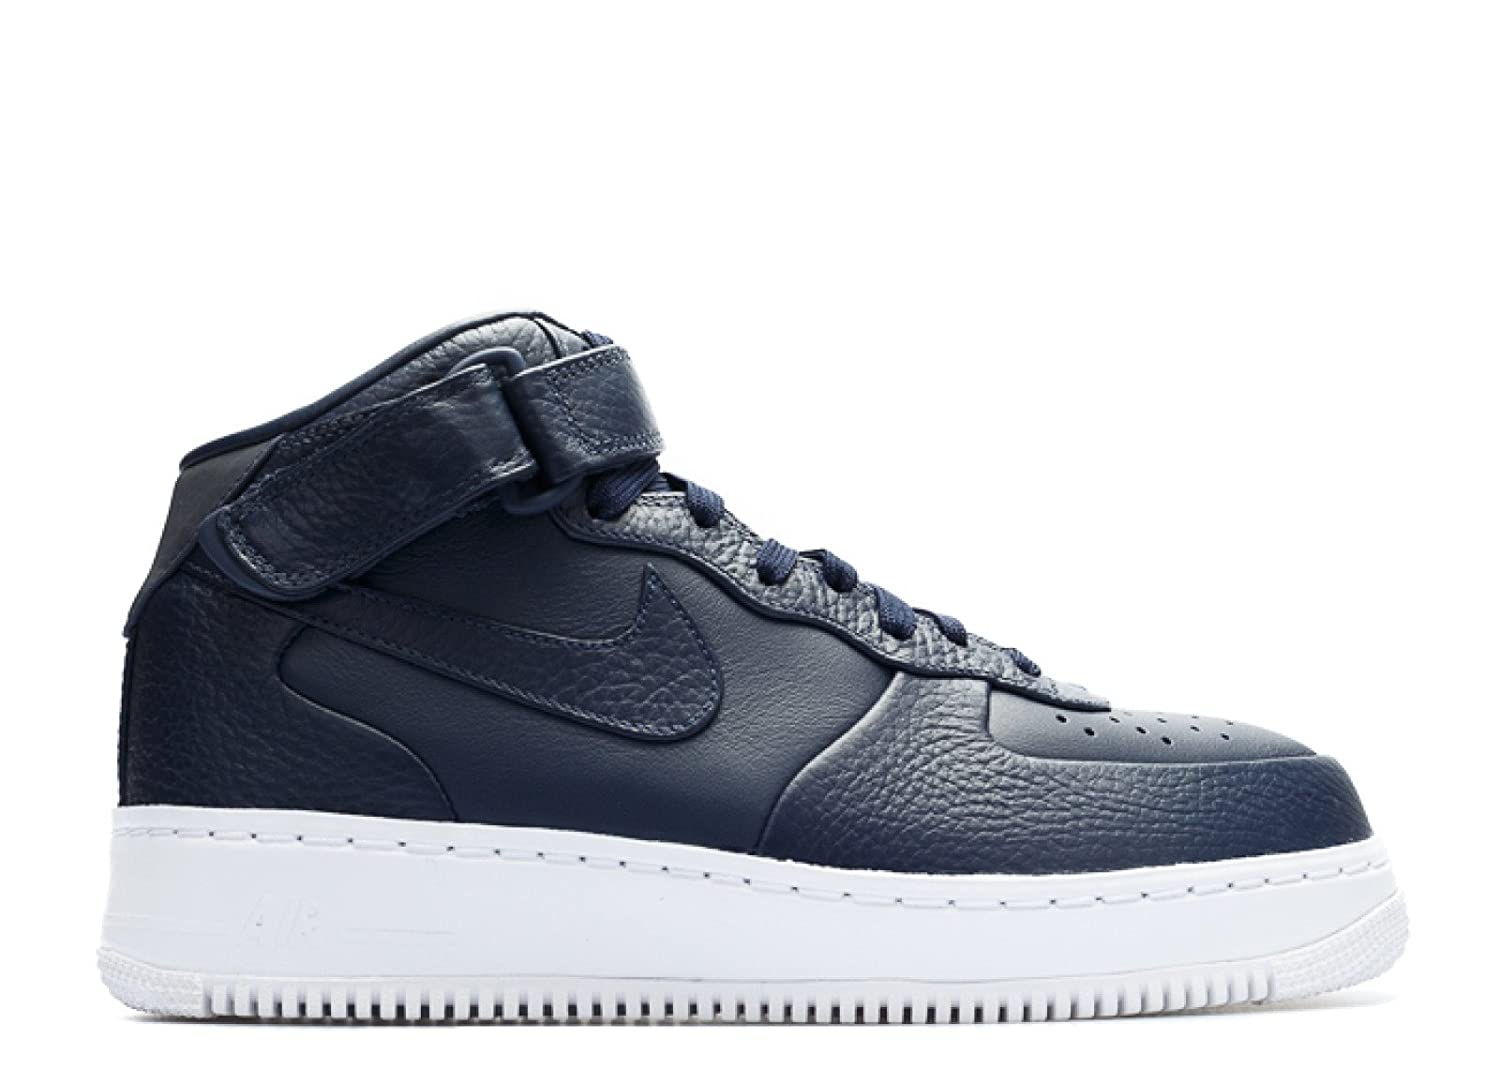 new concept bfc57 9de20 Amazon.com | NikeLab AIR Force 1 MID - Obsidian/Obsidian-White - Size 11 US  | Basketball